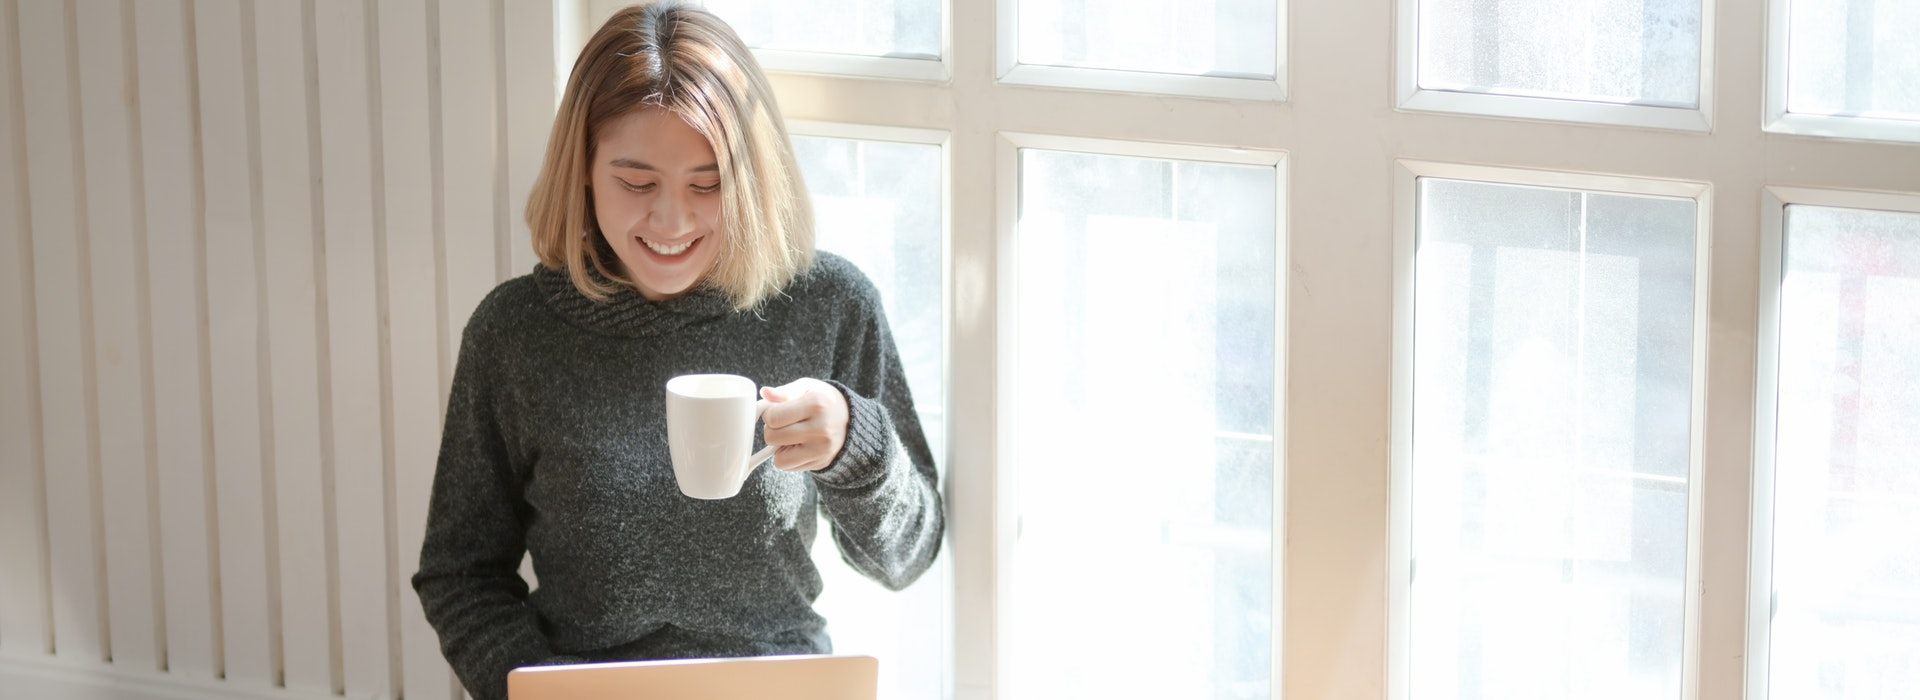 A woman sits in a window, drinking coffee and typing on a laptop